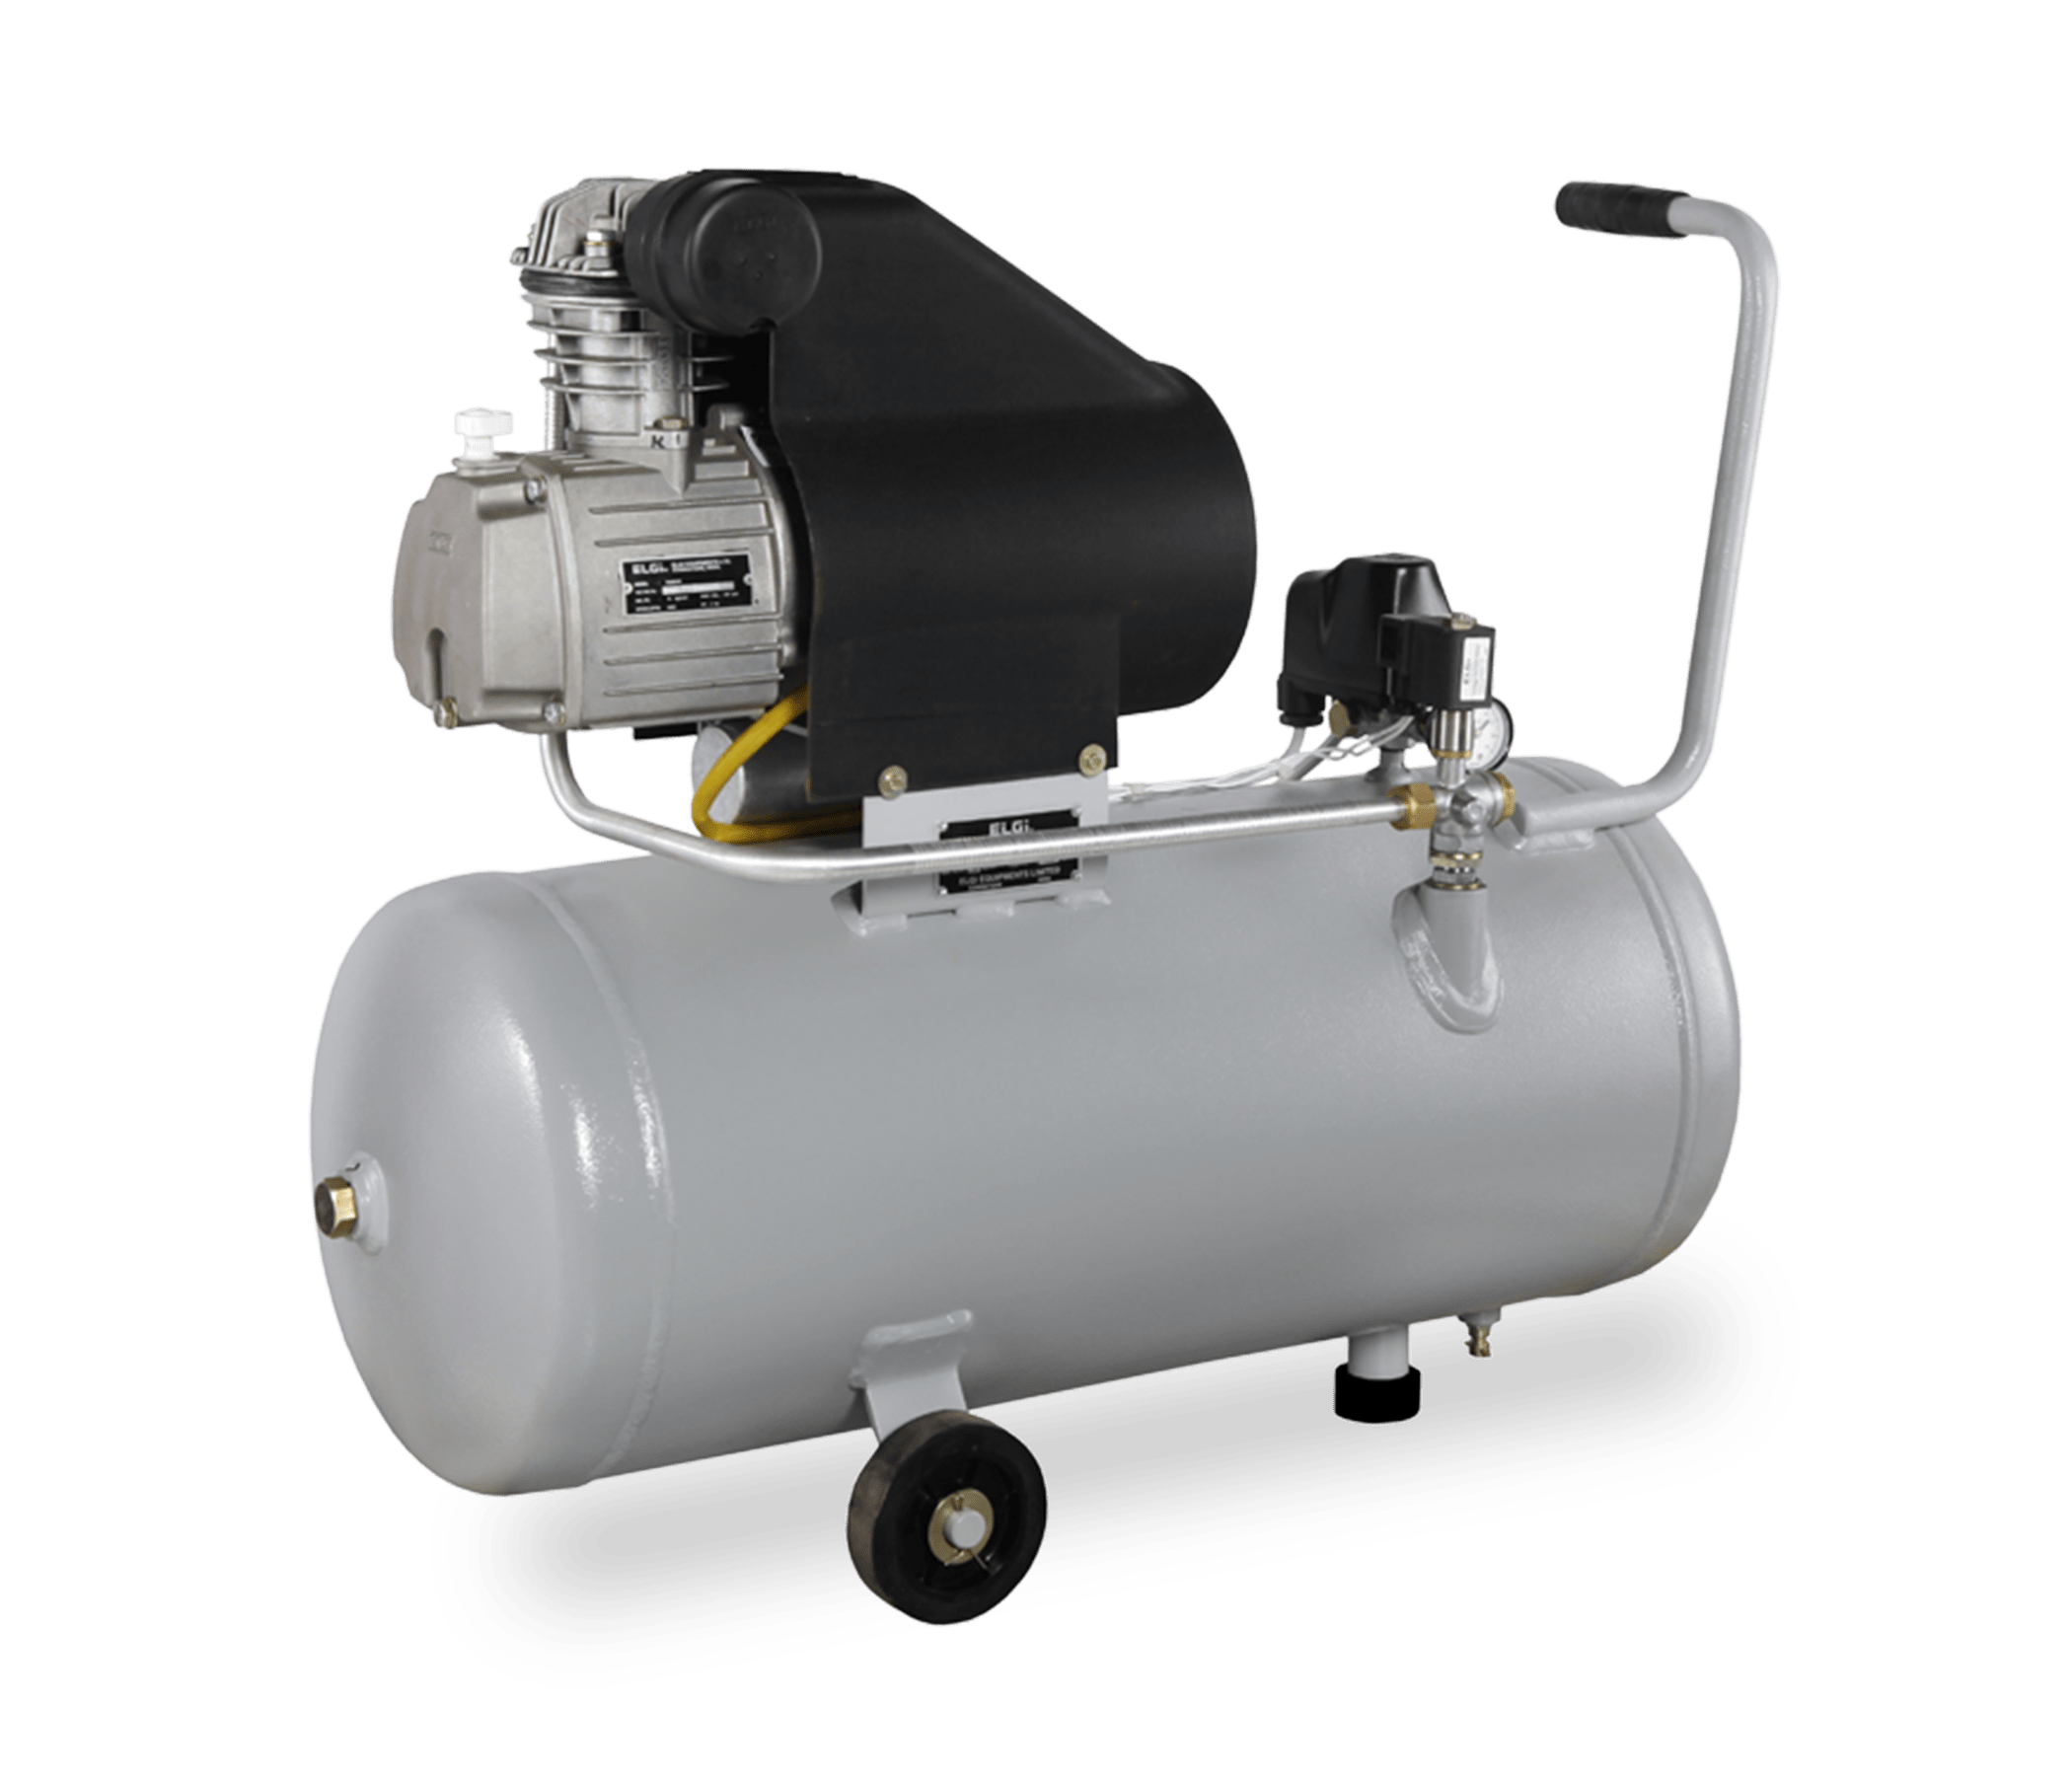 air compressor for small machine shops & fabrication workshops